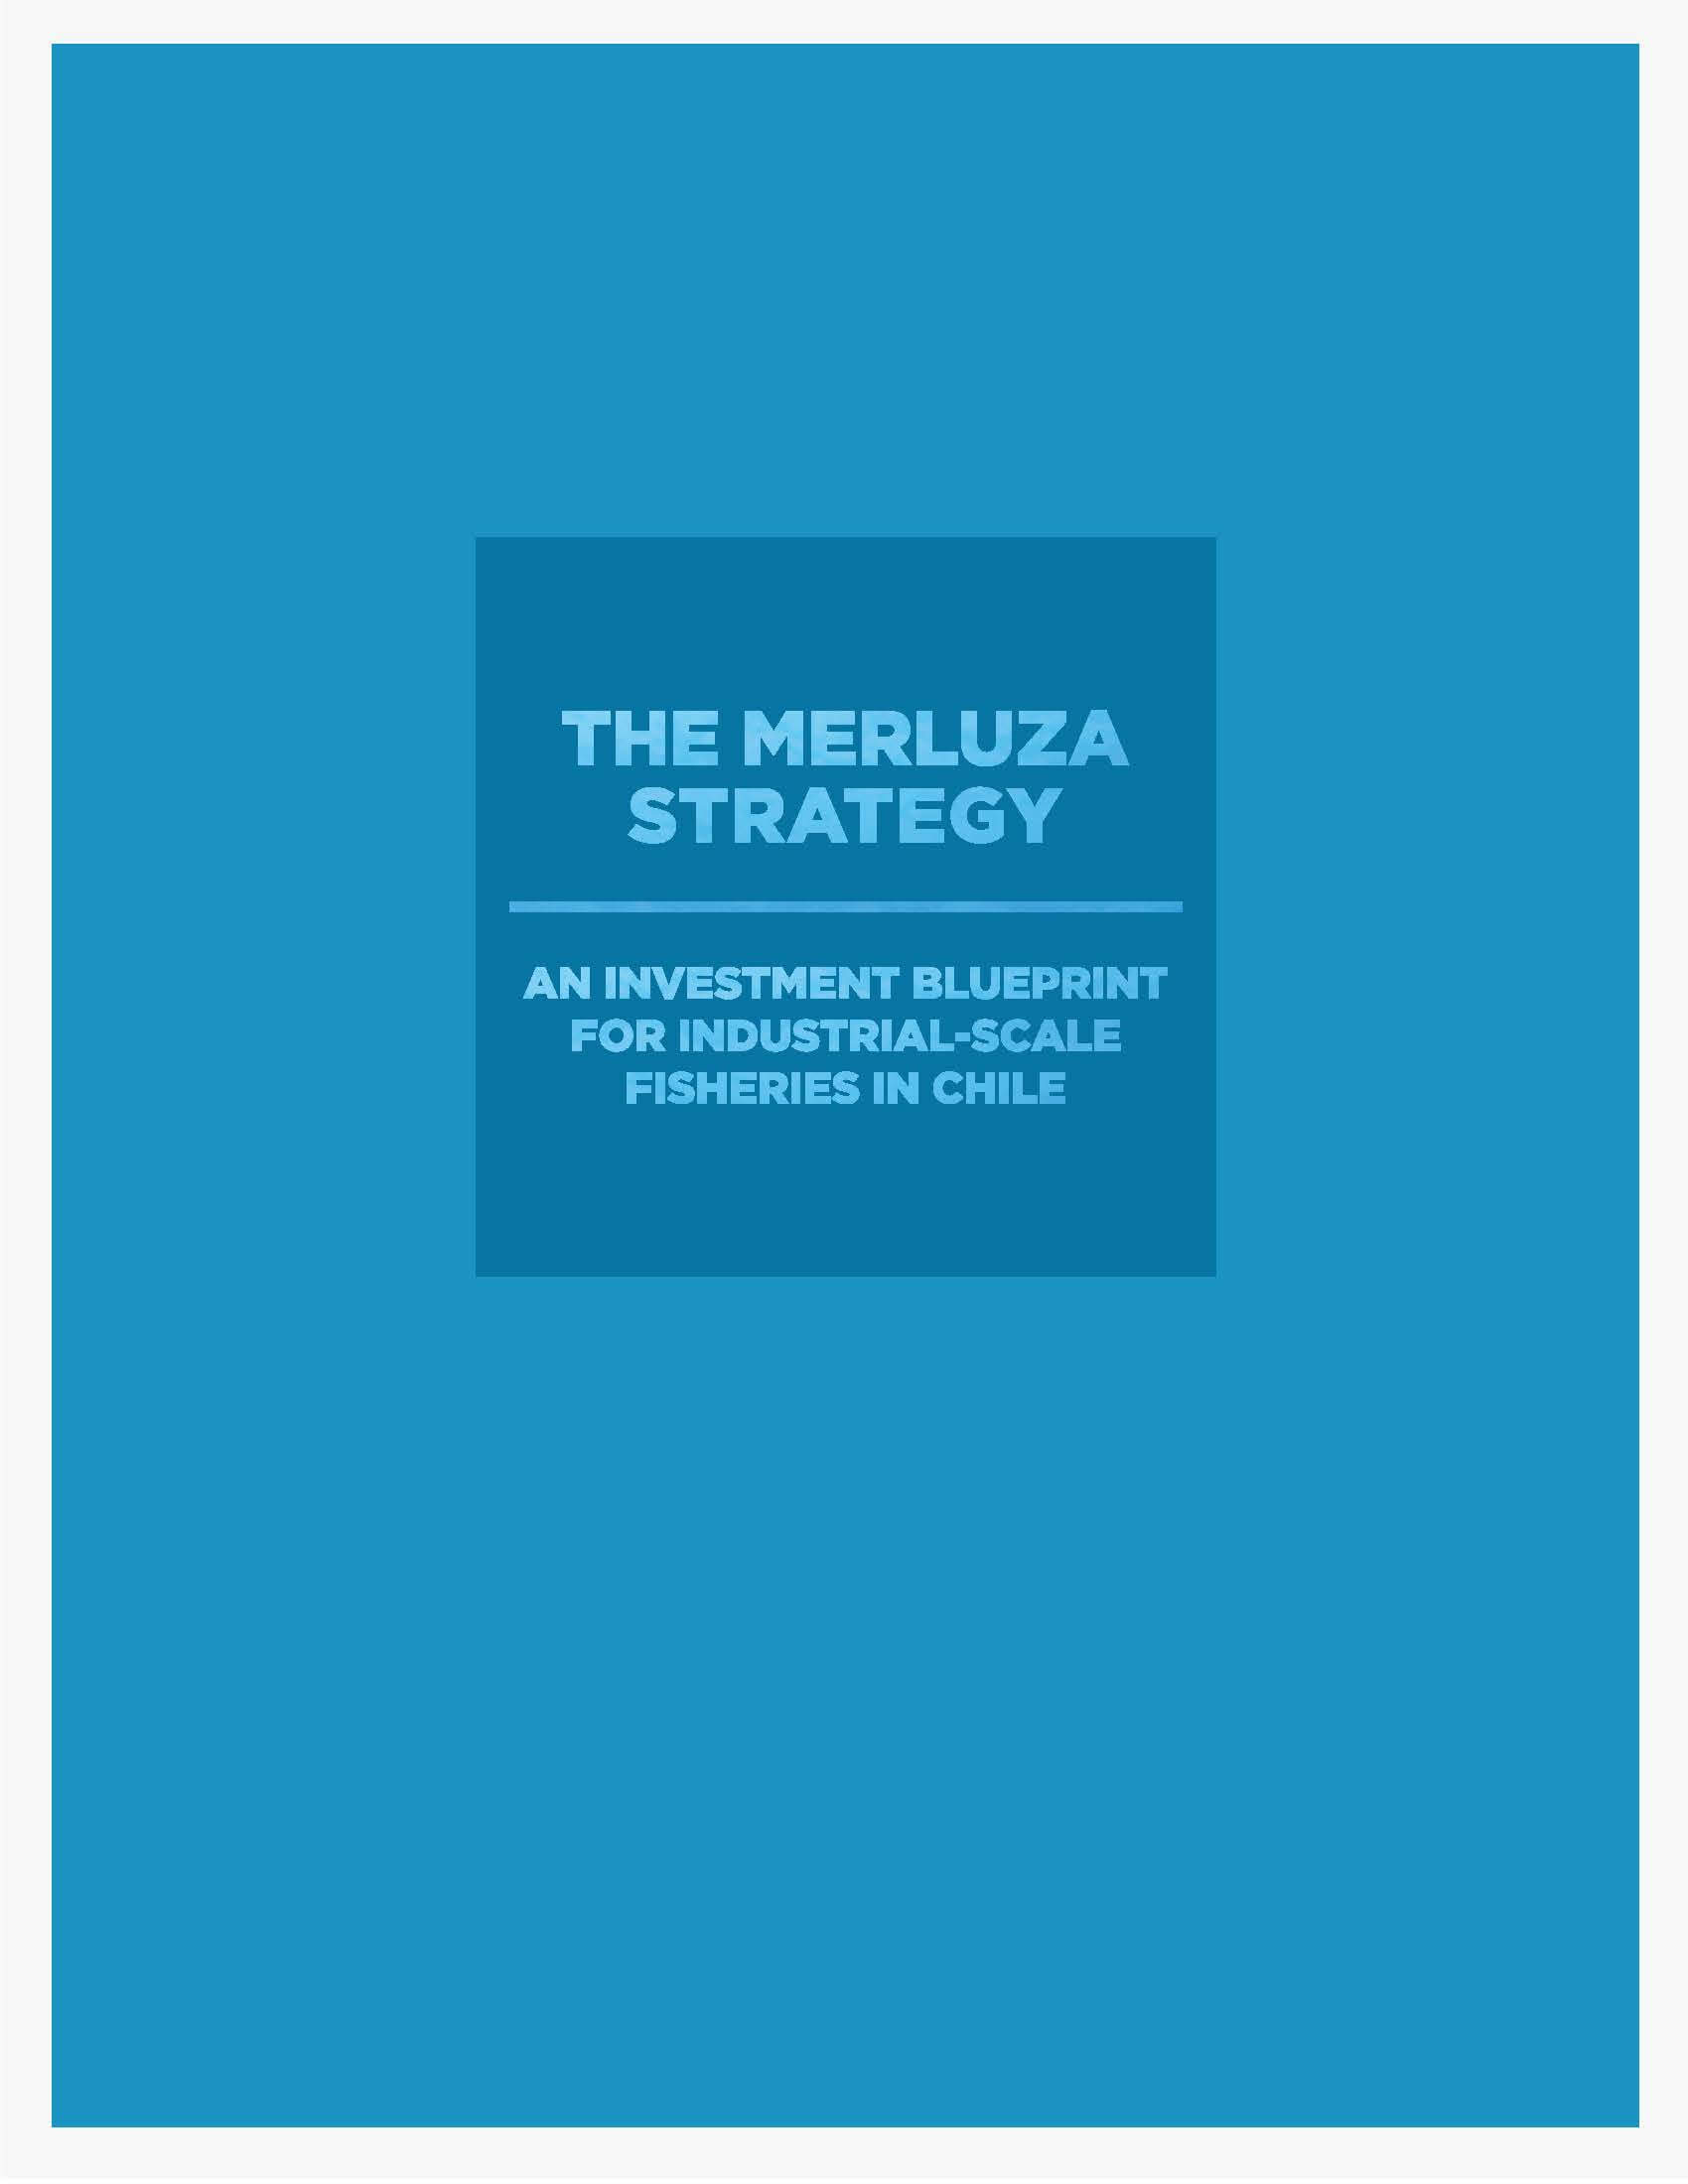 The Merluza Strategy : An Investment Blueprint for Industrial-Scale Fisheries in Chile